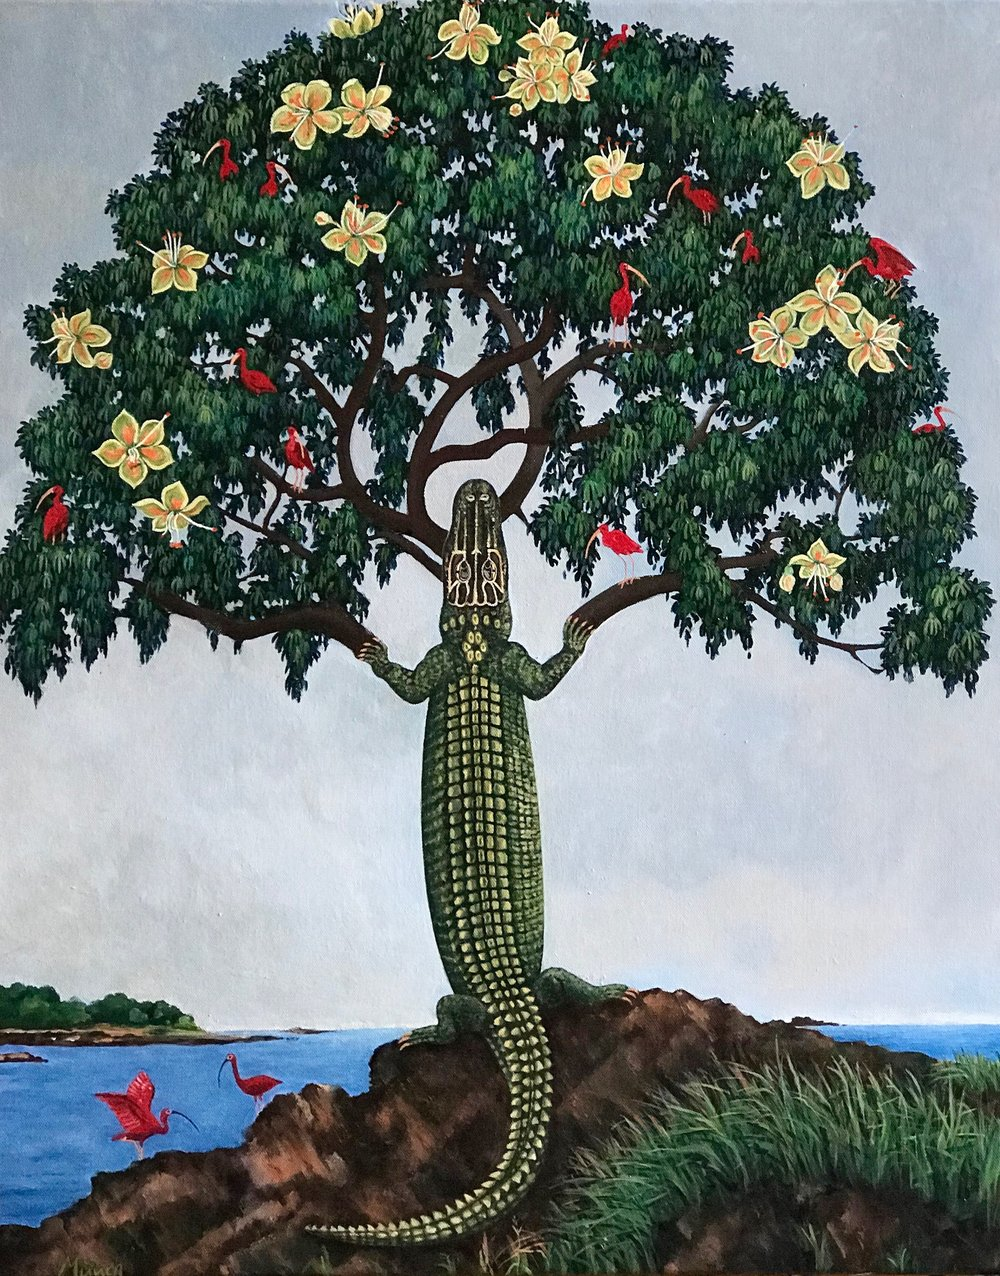 yaxche - Mayan world tree, 24''x30'', acrylic on canvas, 2018